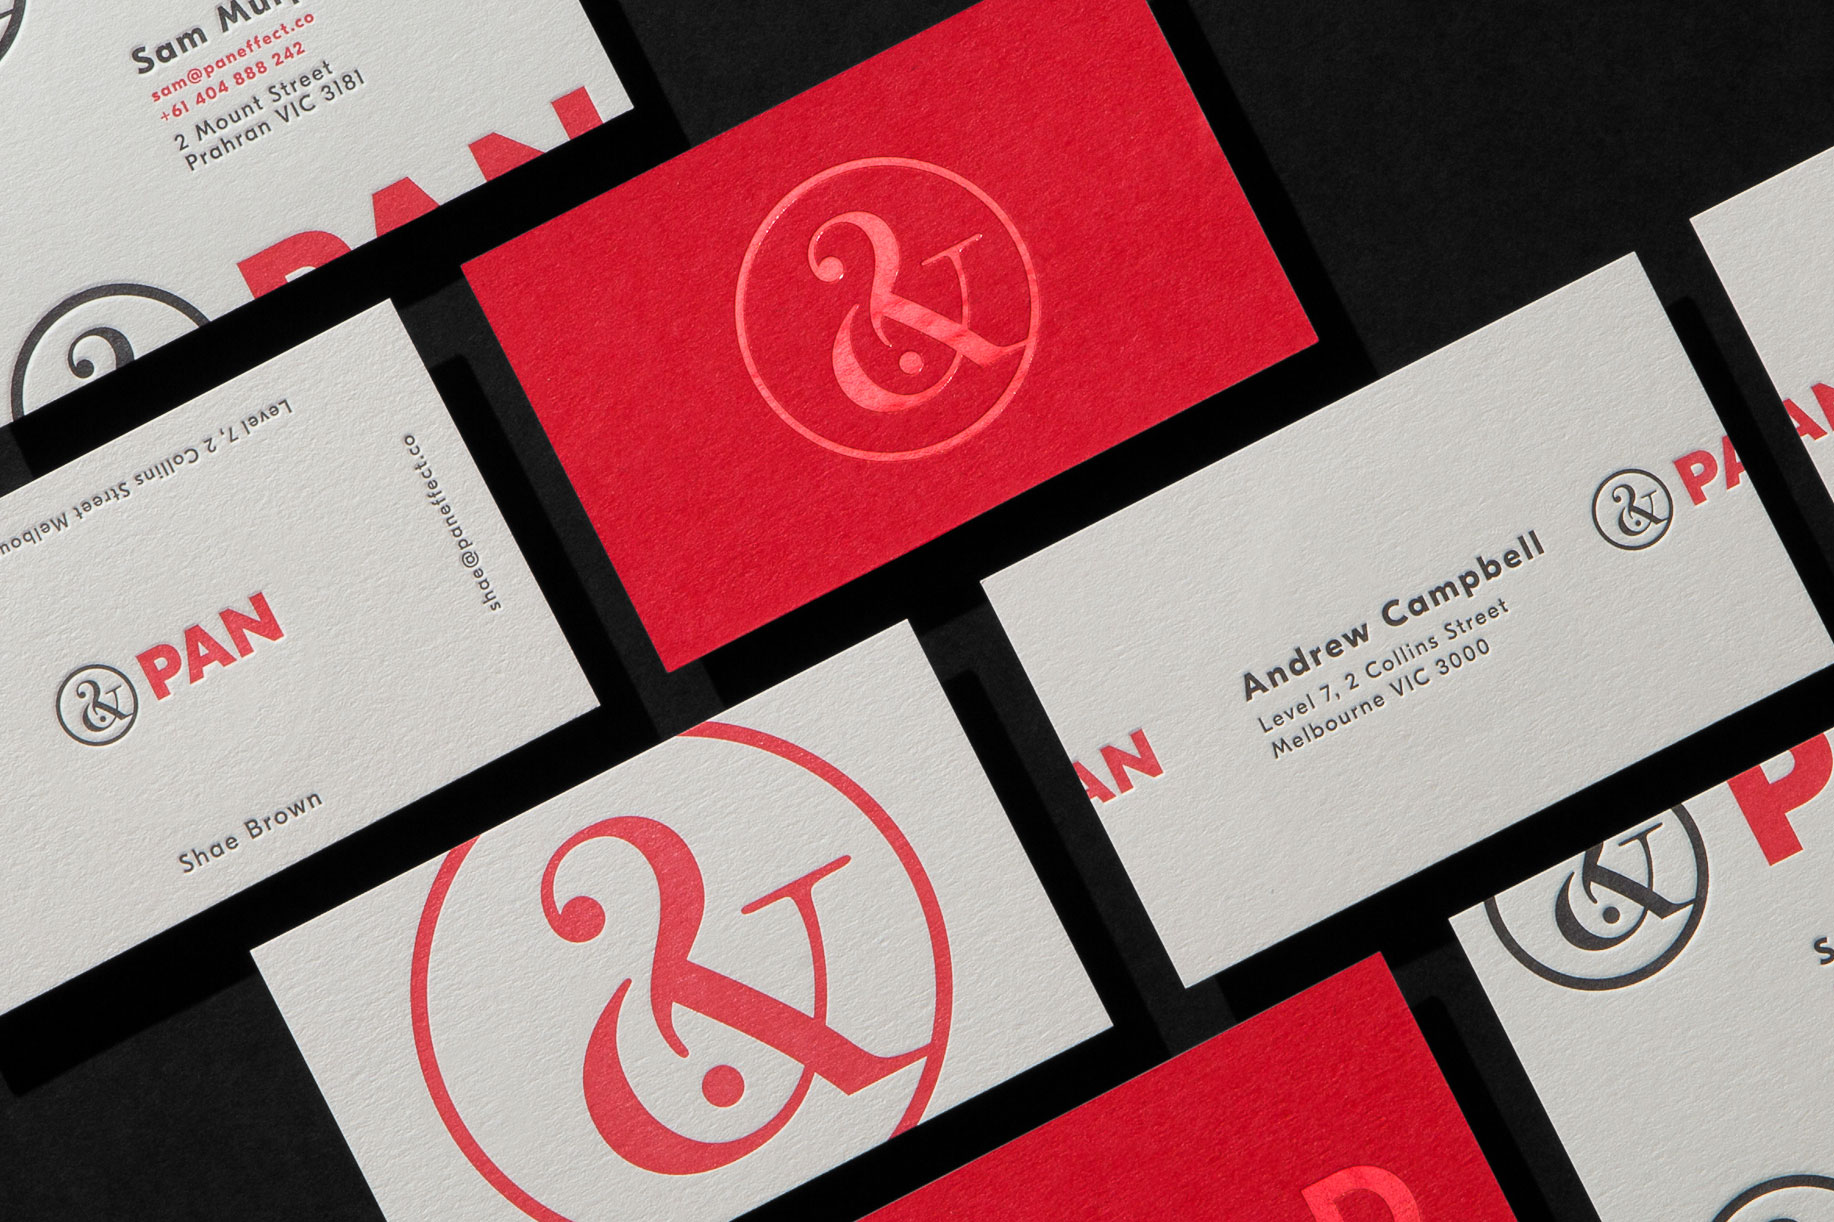 Red Foil and Letterpress Business Cards for PAN on Colorplan Bright Red duplexed to Colorplan Mist 1